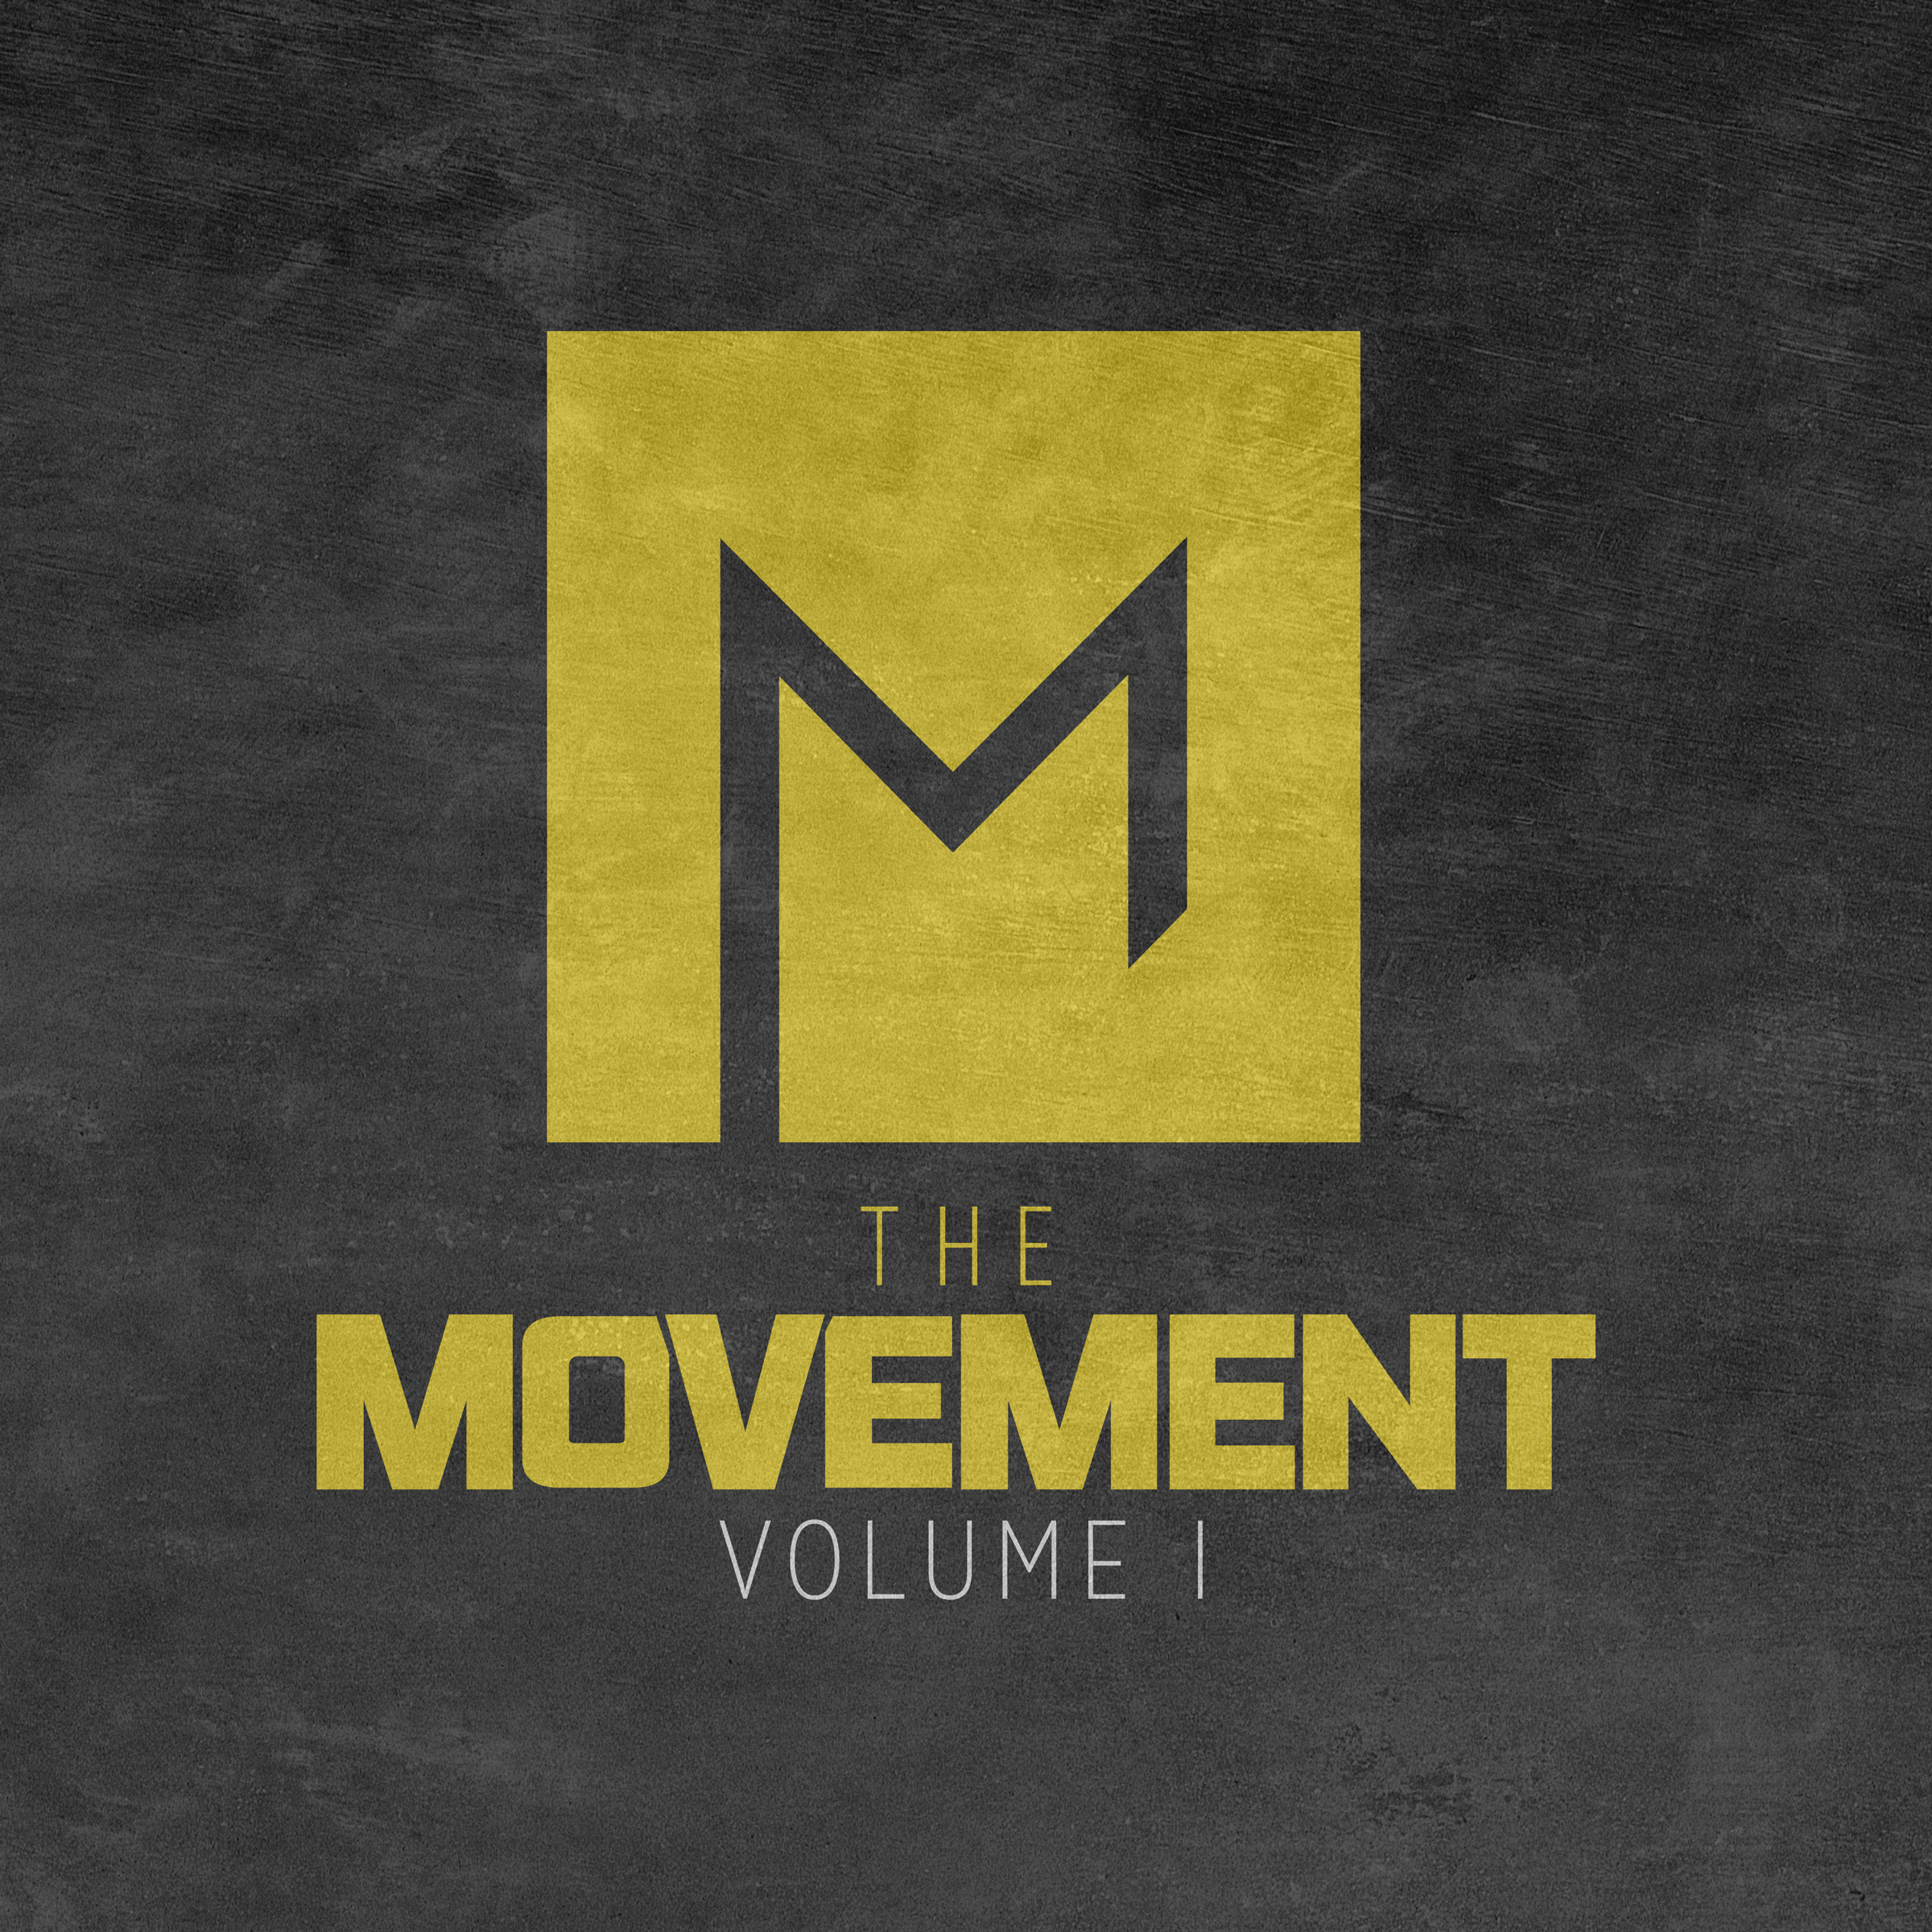 The Movement Vol. 1 from Good Fruit Co